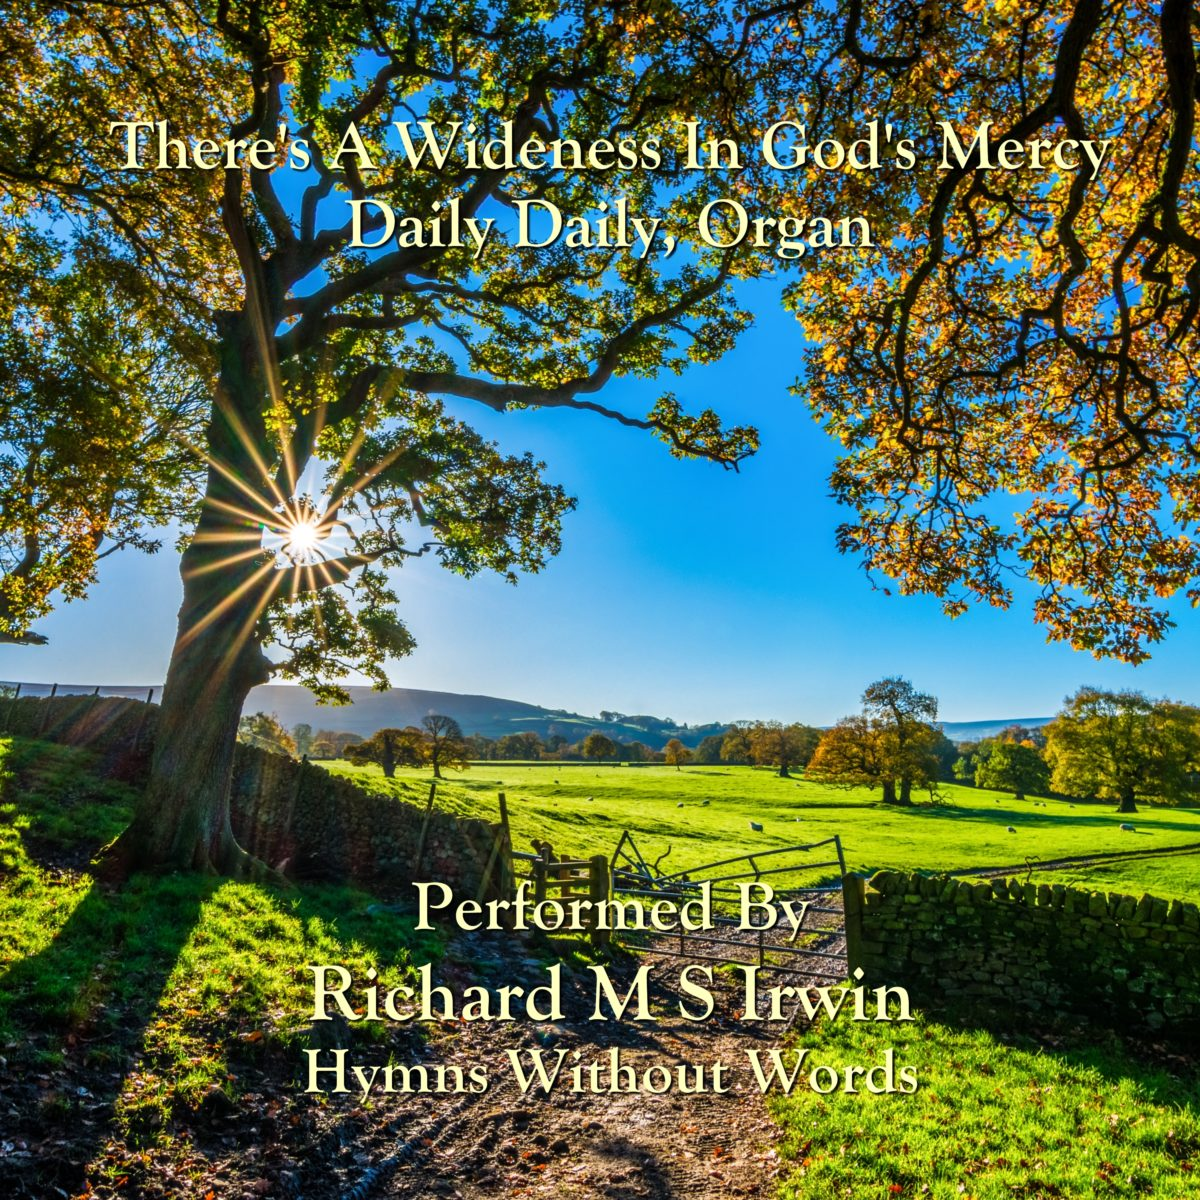 There'S A Wideness In God'S Mercy (Daily Daily, Organ, 3 Verses)